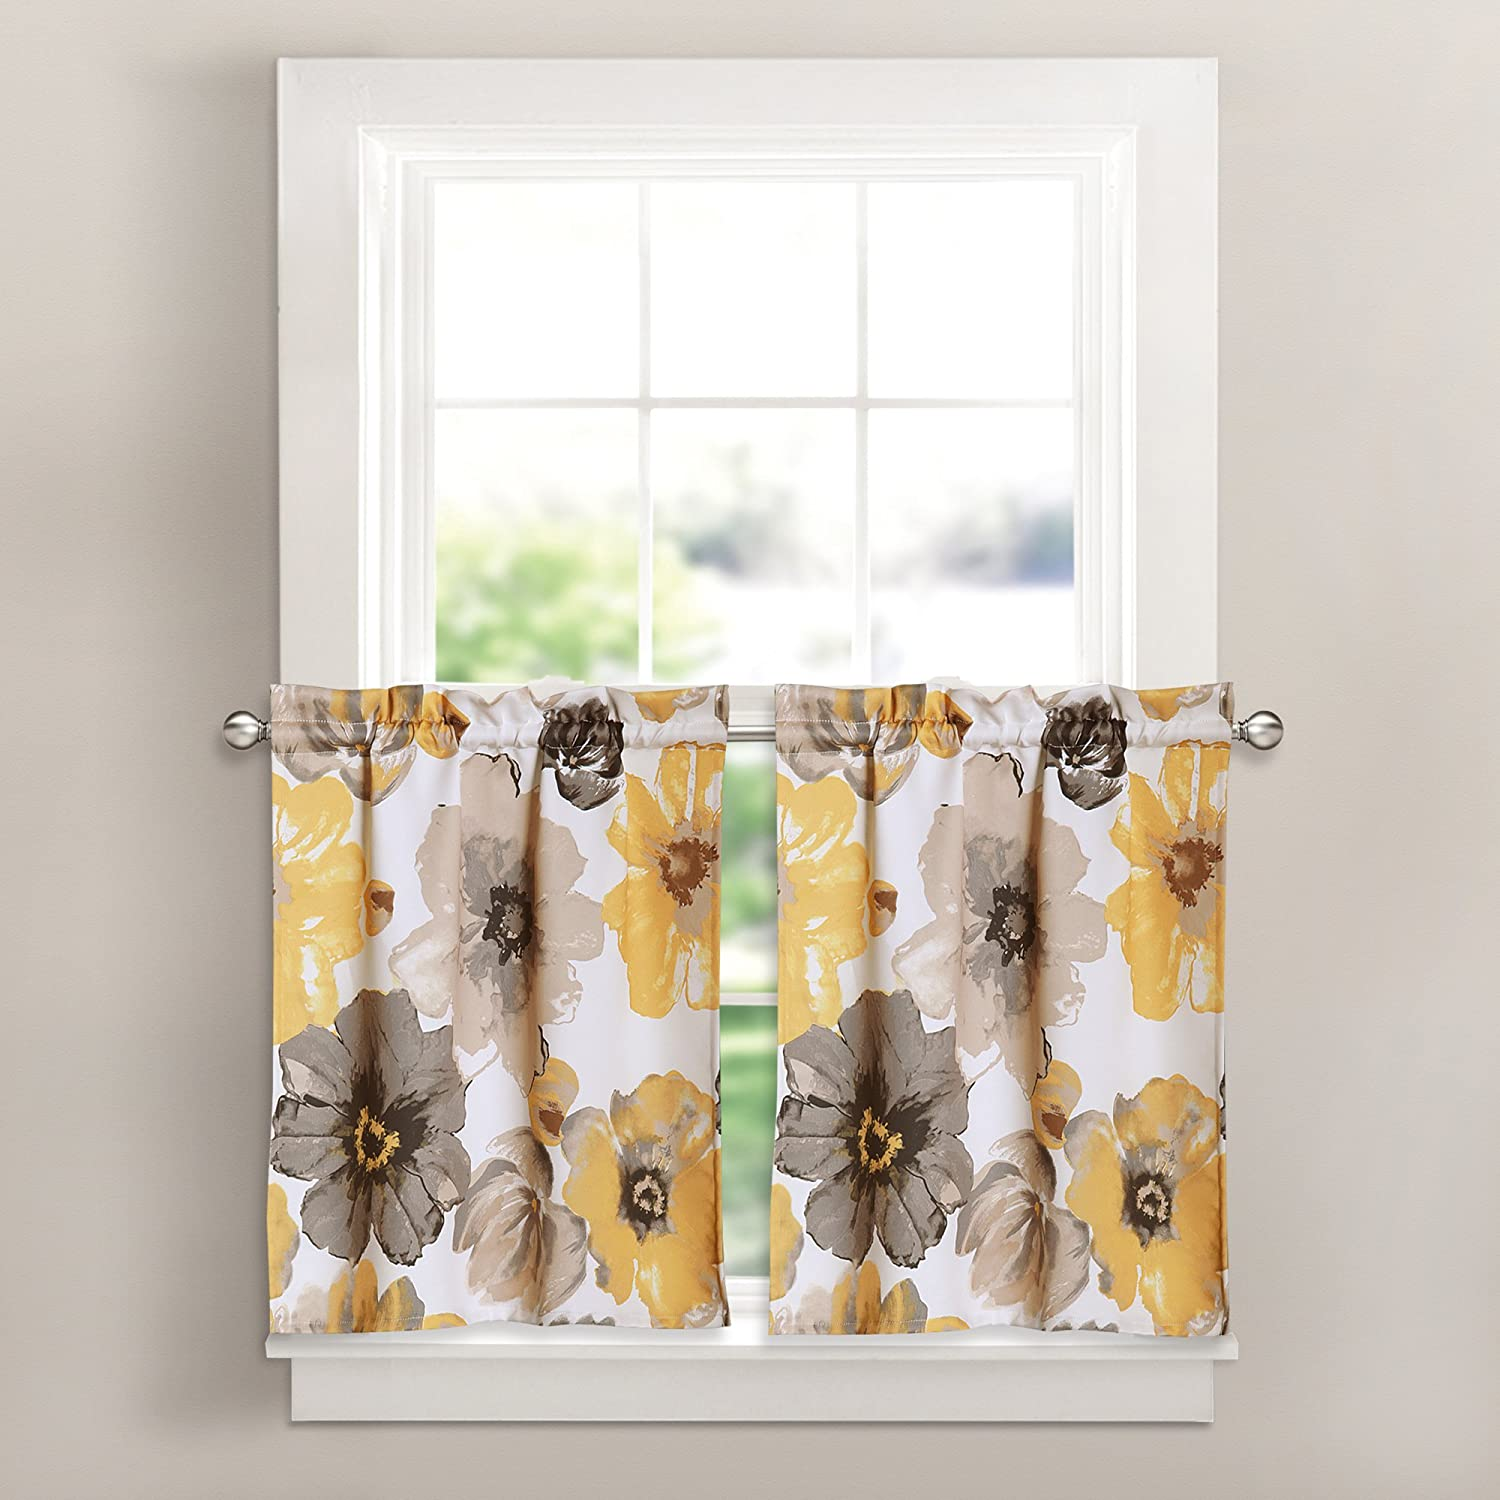 Lush Decor Leah Room Darkening Kitchen Curtain Tier Set Yellow/Gray